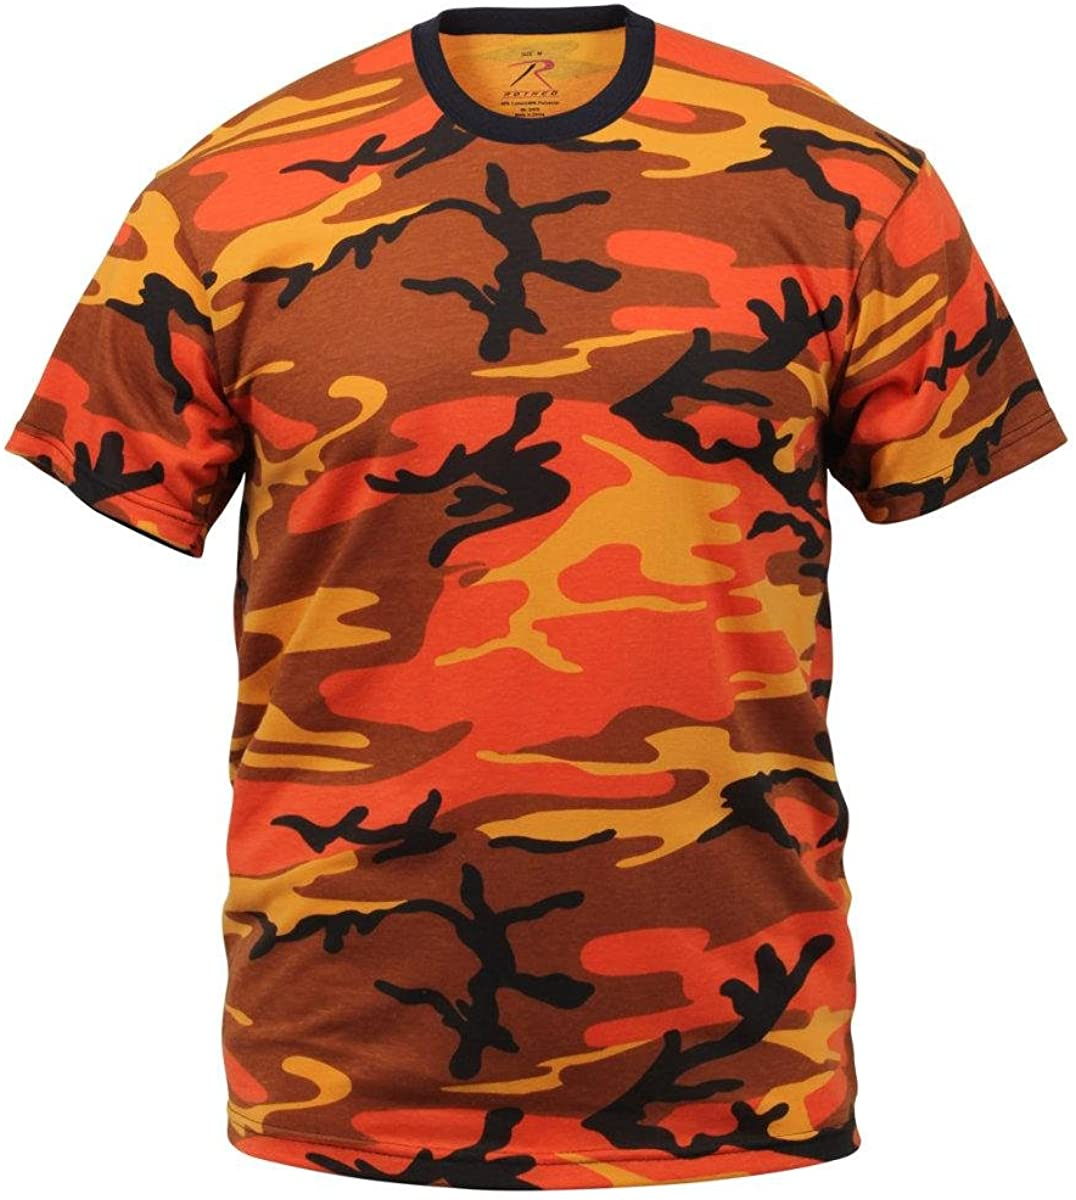 Savage Orange Camouflage Military T-Shirt (Polyester/Cotton) Size 2X-Large